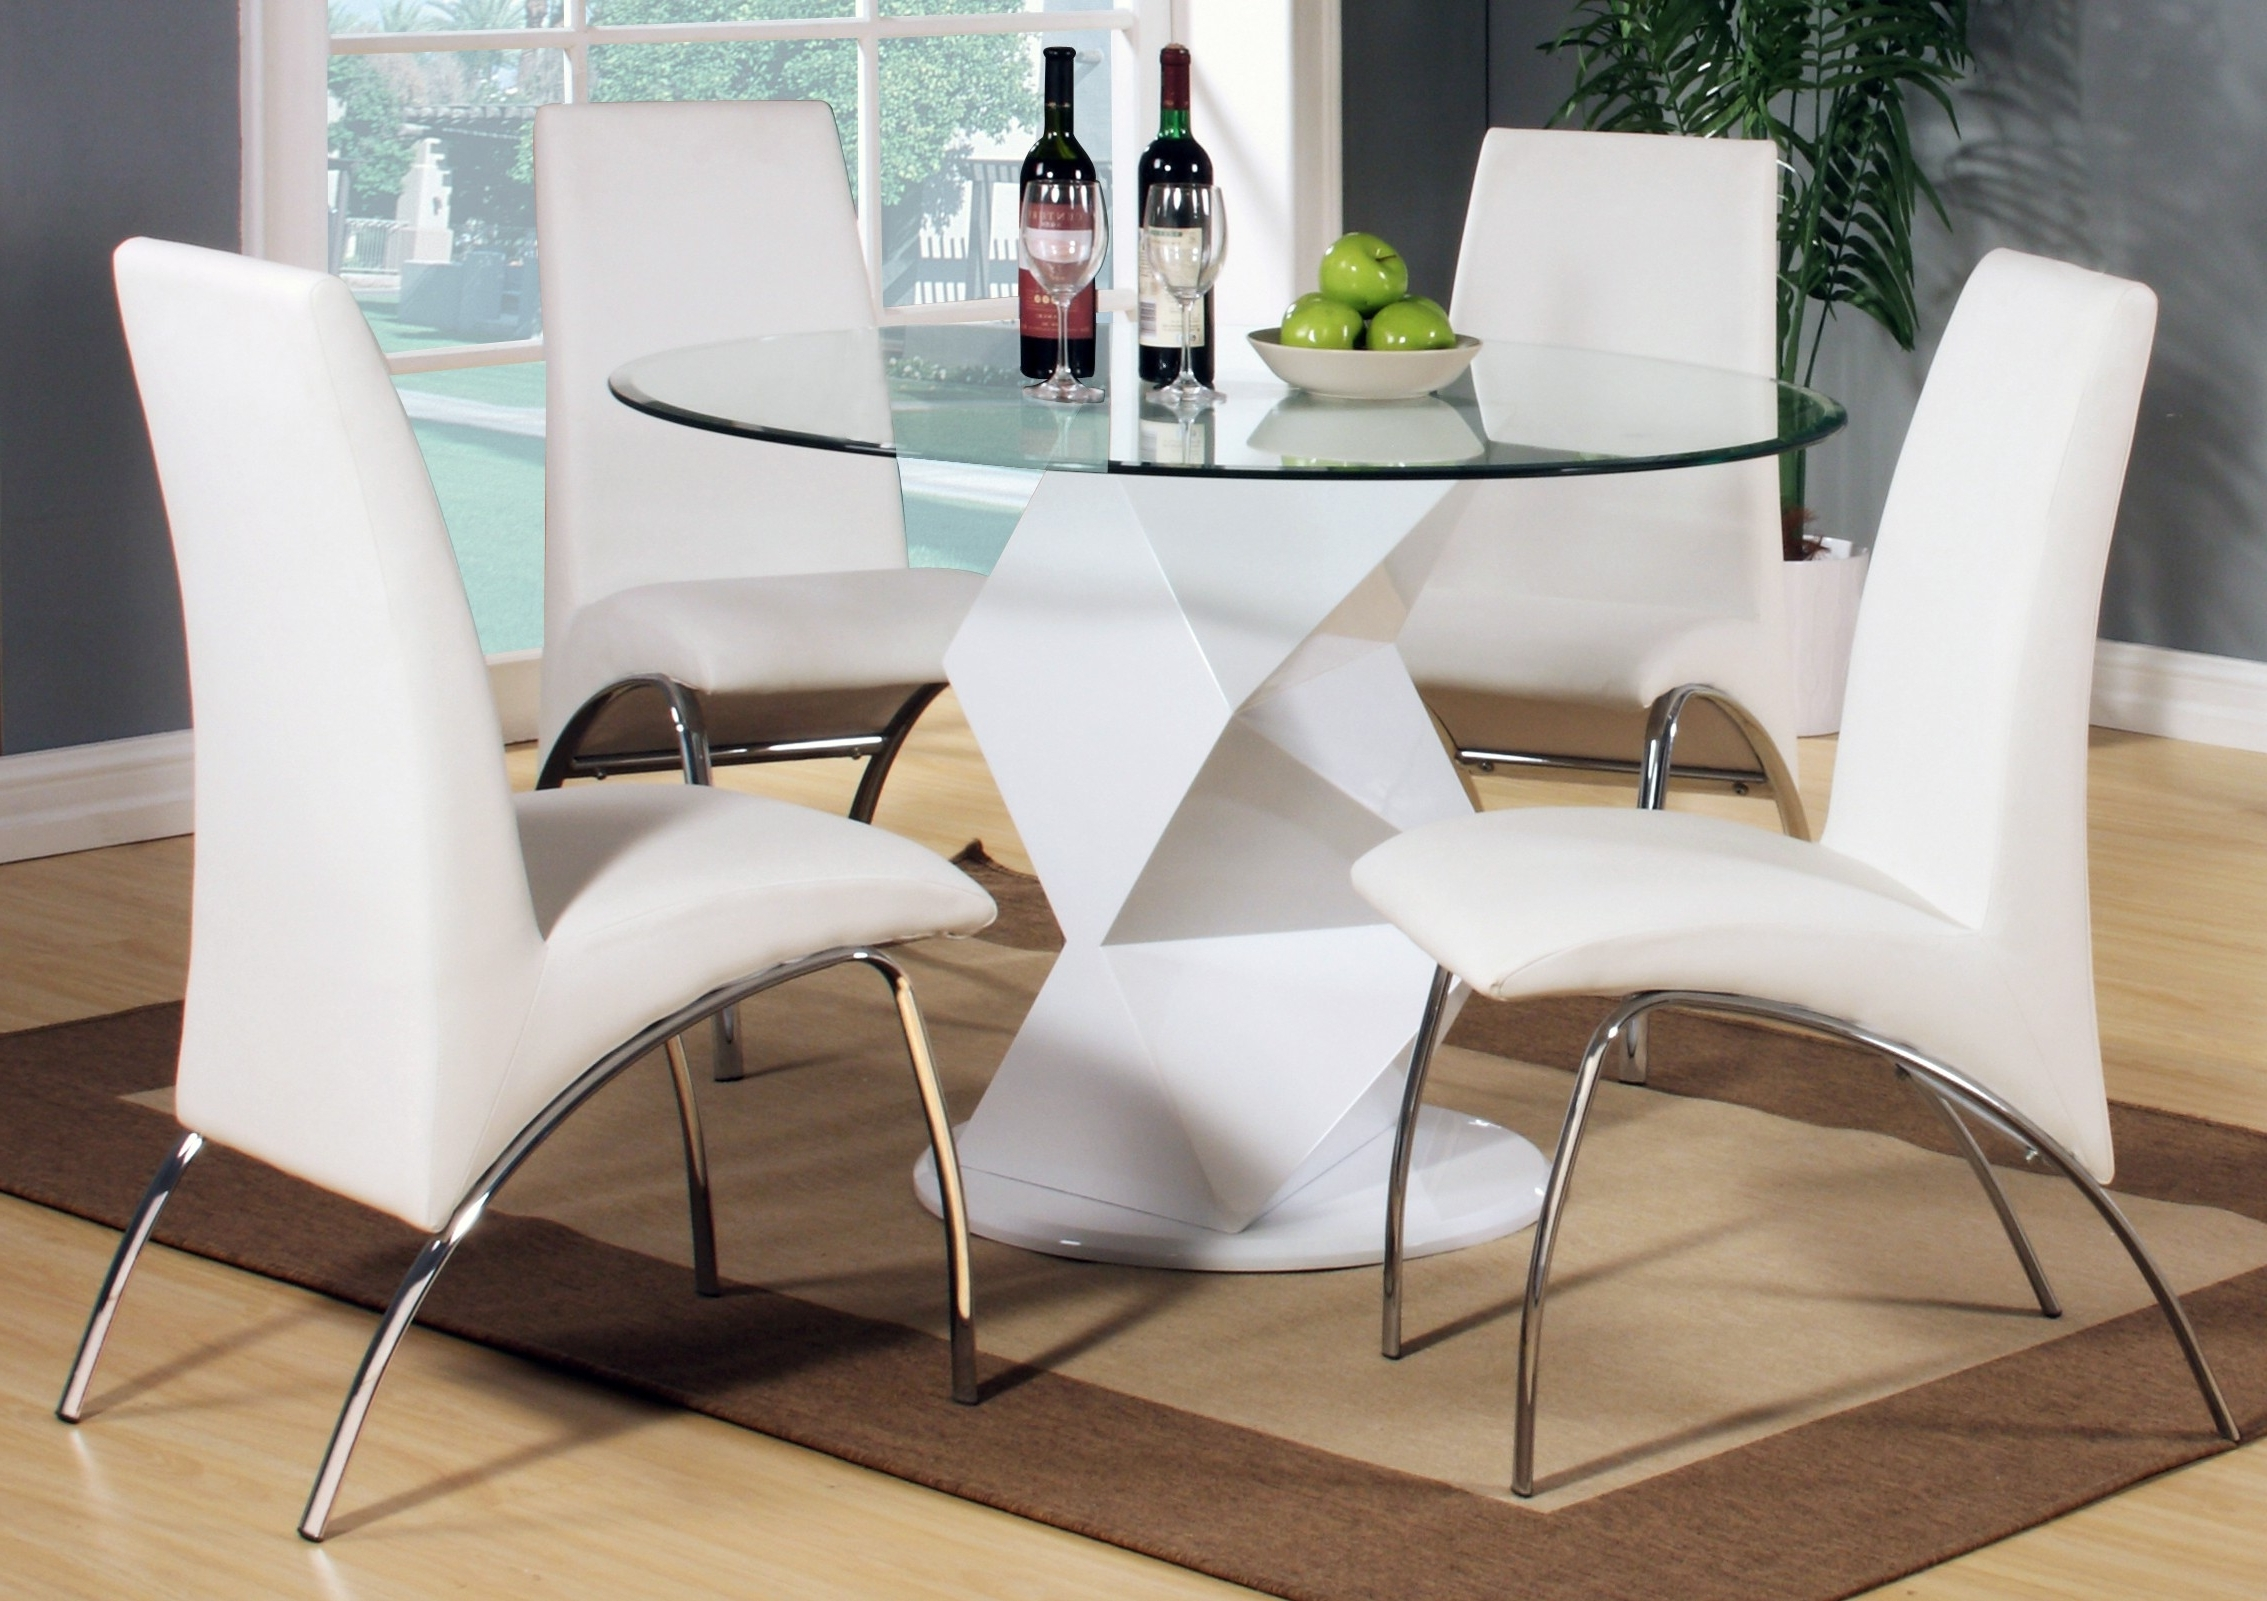 Widely Used Finn White High Gloss Round Dining Table Set 4 Seater With Regard To High Gloss Dining Tables Sets (View 6 of 25)